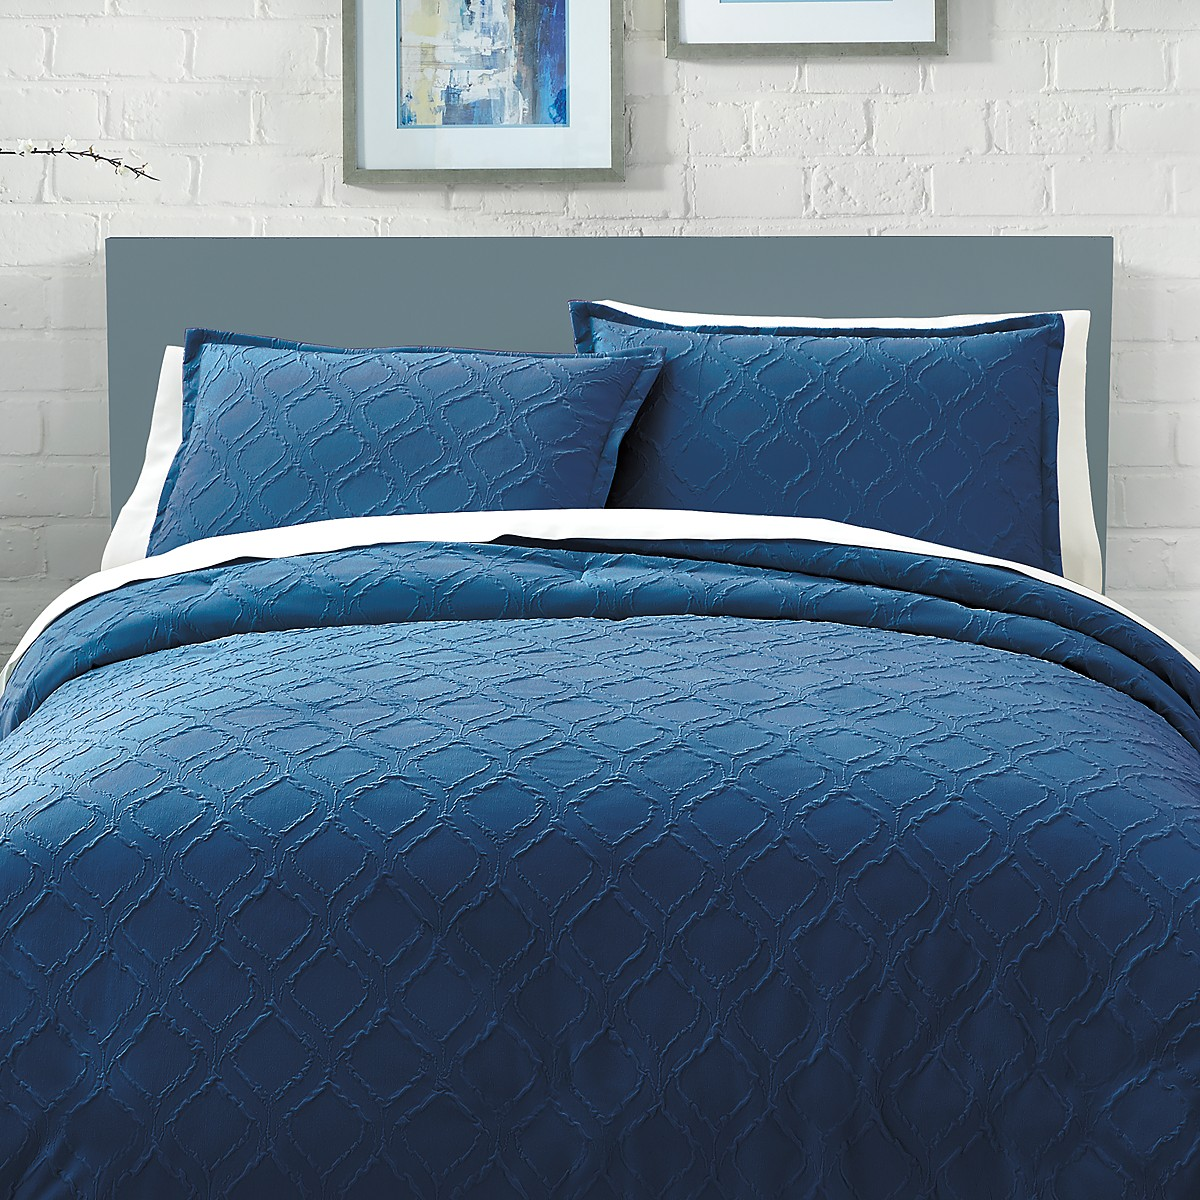 sets luxury lowes decorative and mid area bedroom century tufted top size vanity modern armchairs bloomingdales ideas crate beautiful barrel cozy bed flooring comforter pillows linen wood brands nice design transitional abstract cool for duvet plus with rug comforters covers king